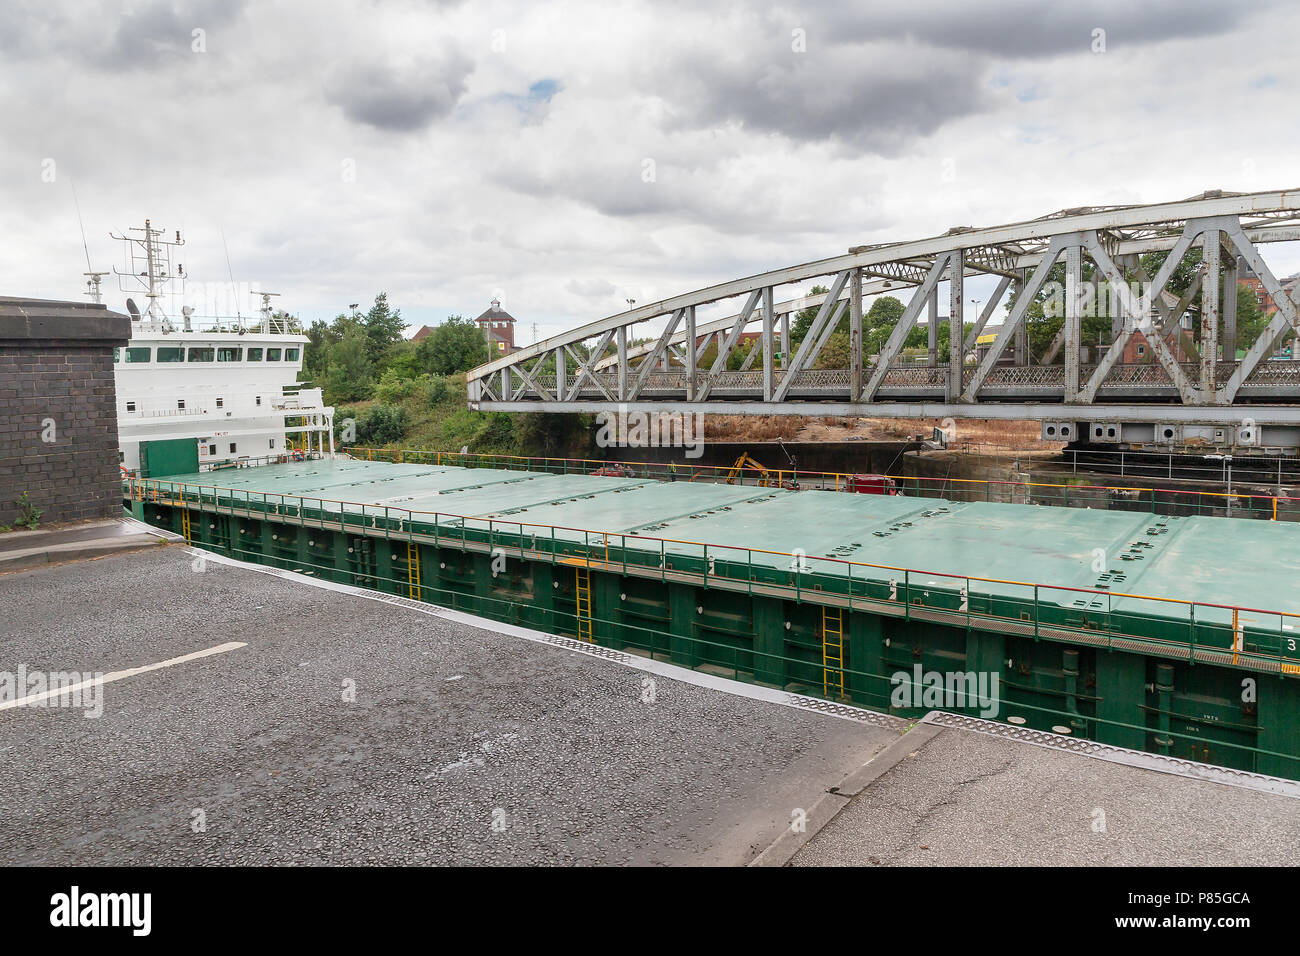 Arklow Rebel, a 13 year old General Cargo Ship from Ireland travels along the Manchester Ship Canal, through the open Swing Bridge at Stockton Heath Stock Photo